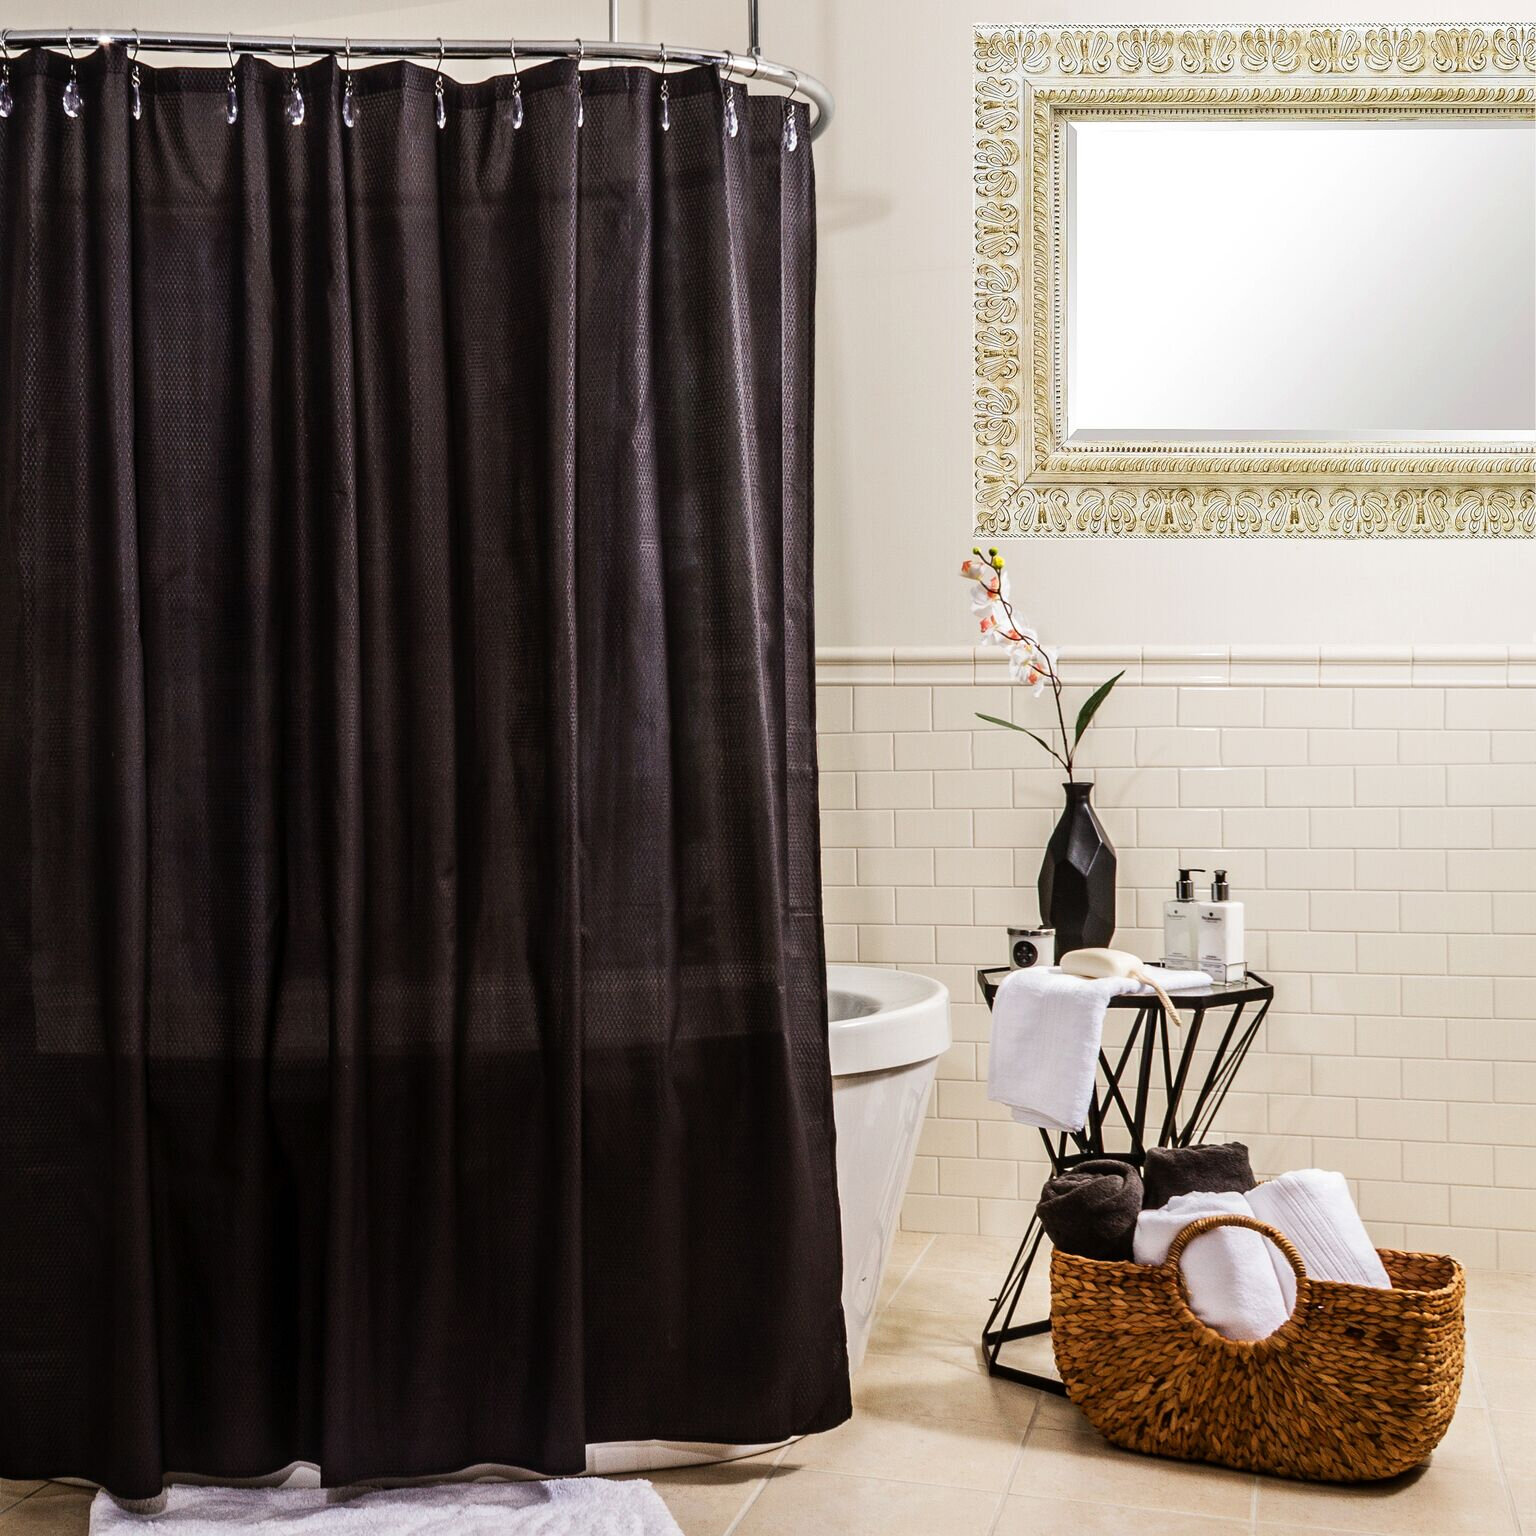 Water Proof Microfiber Shower Curtain